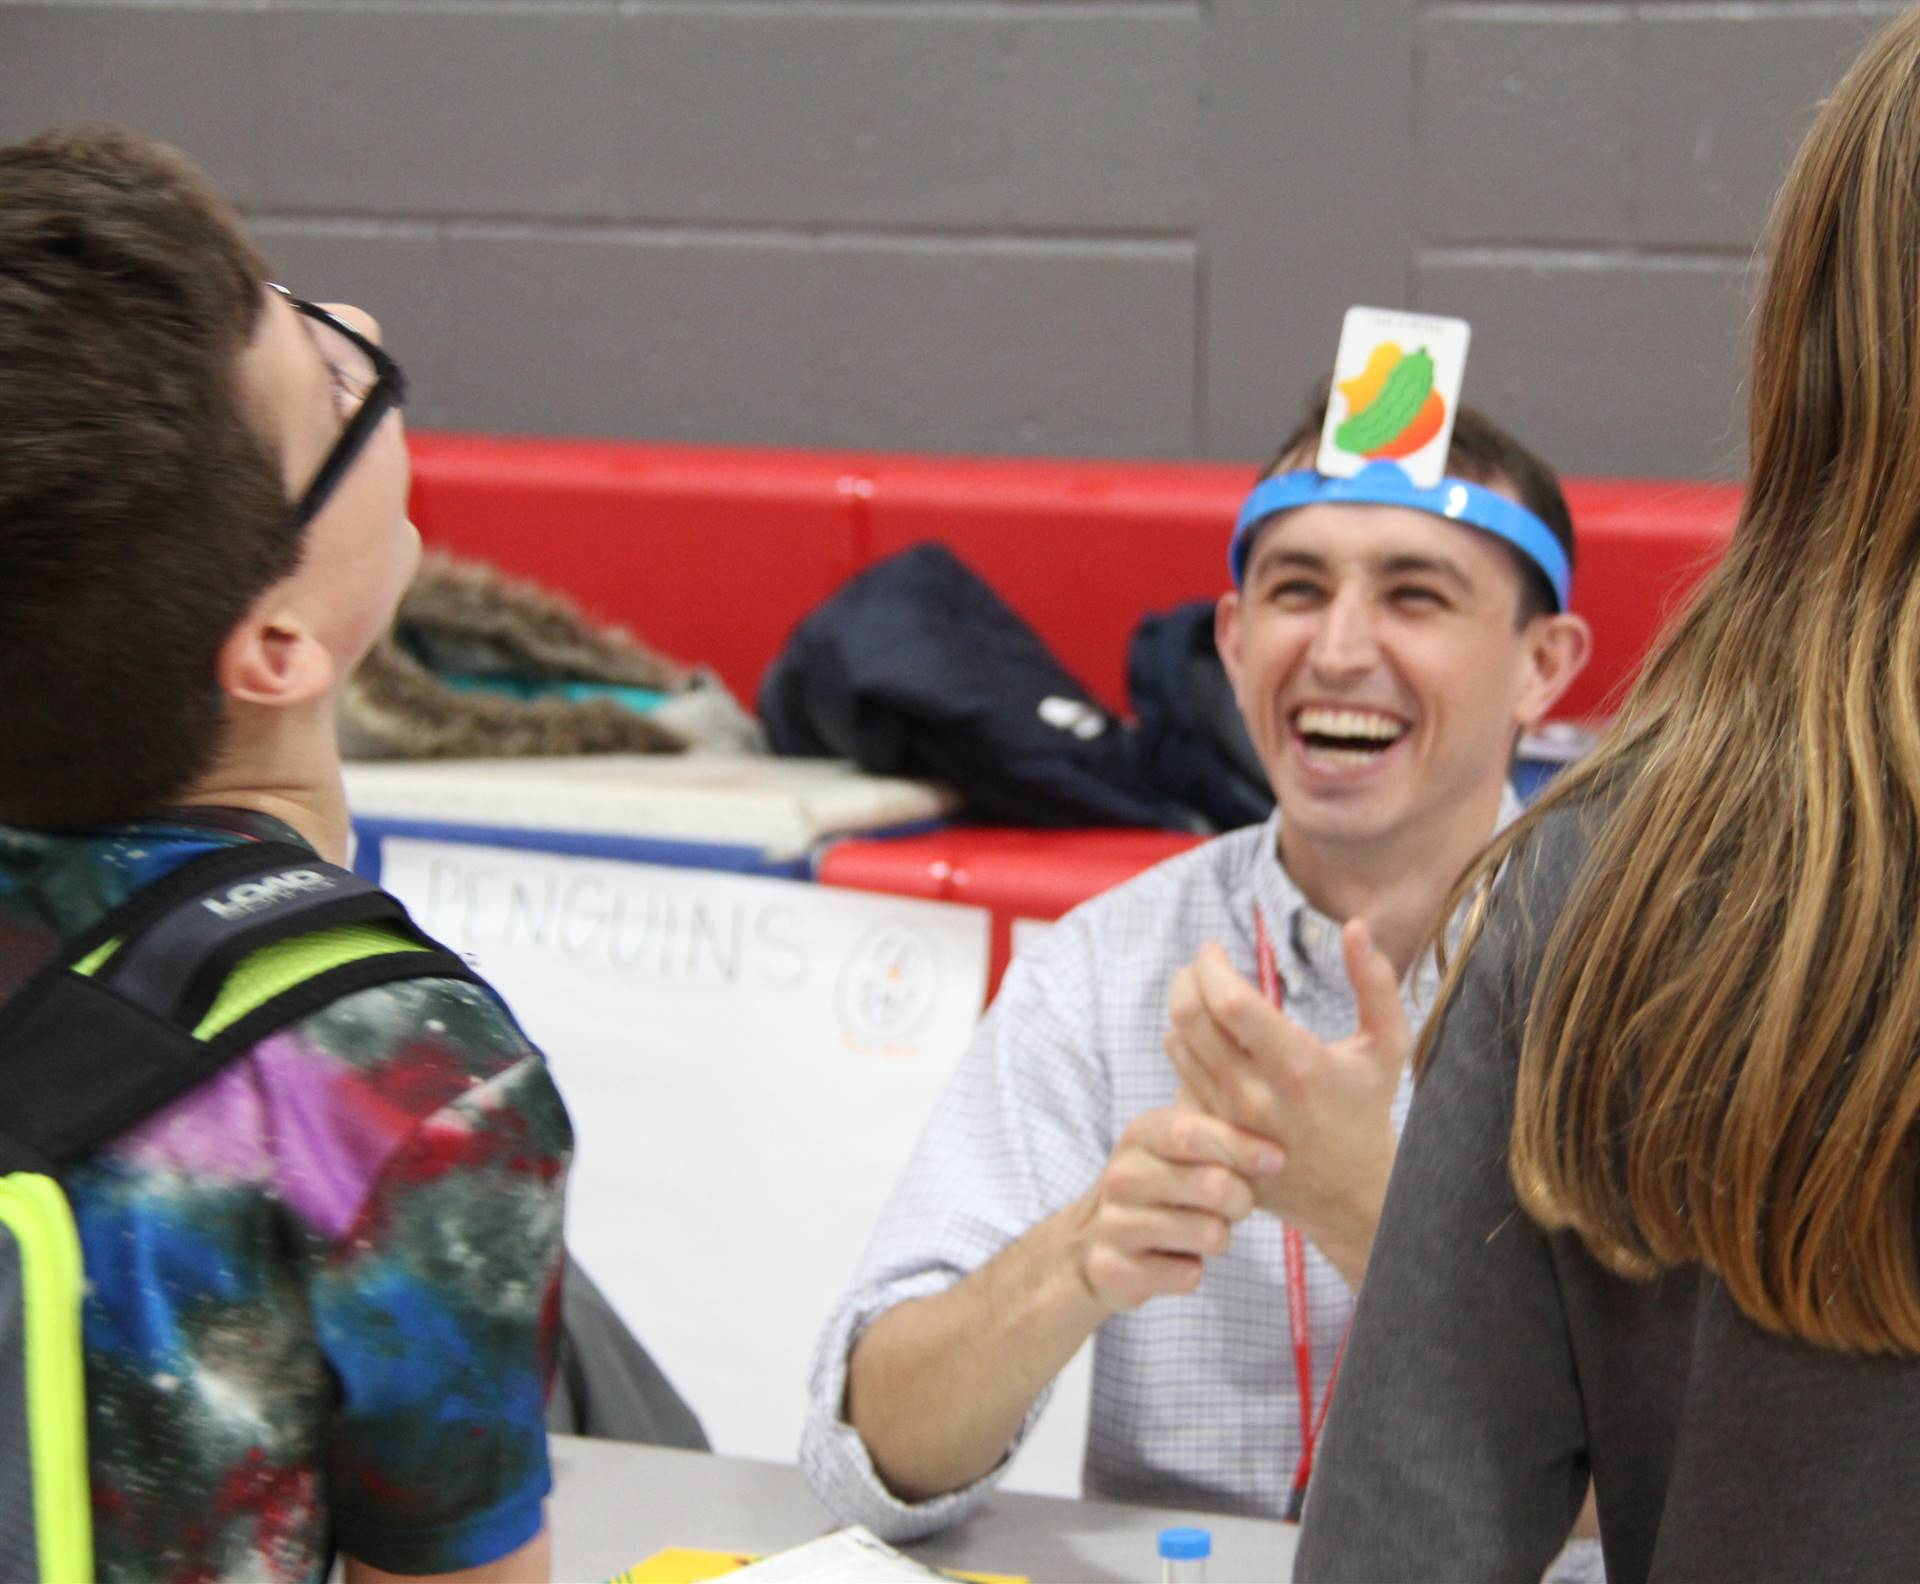 student and teacher laughing during game